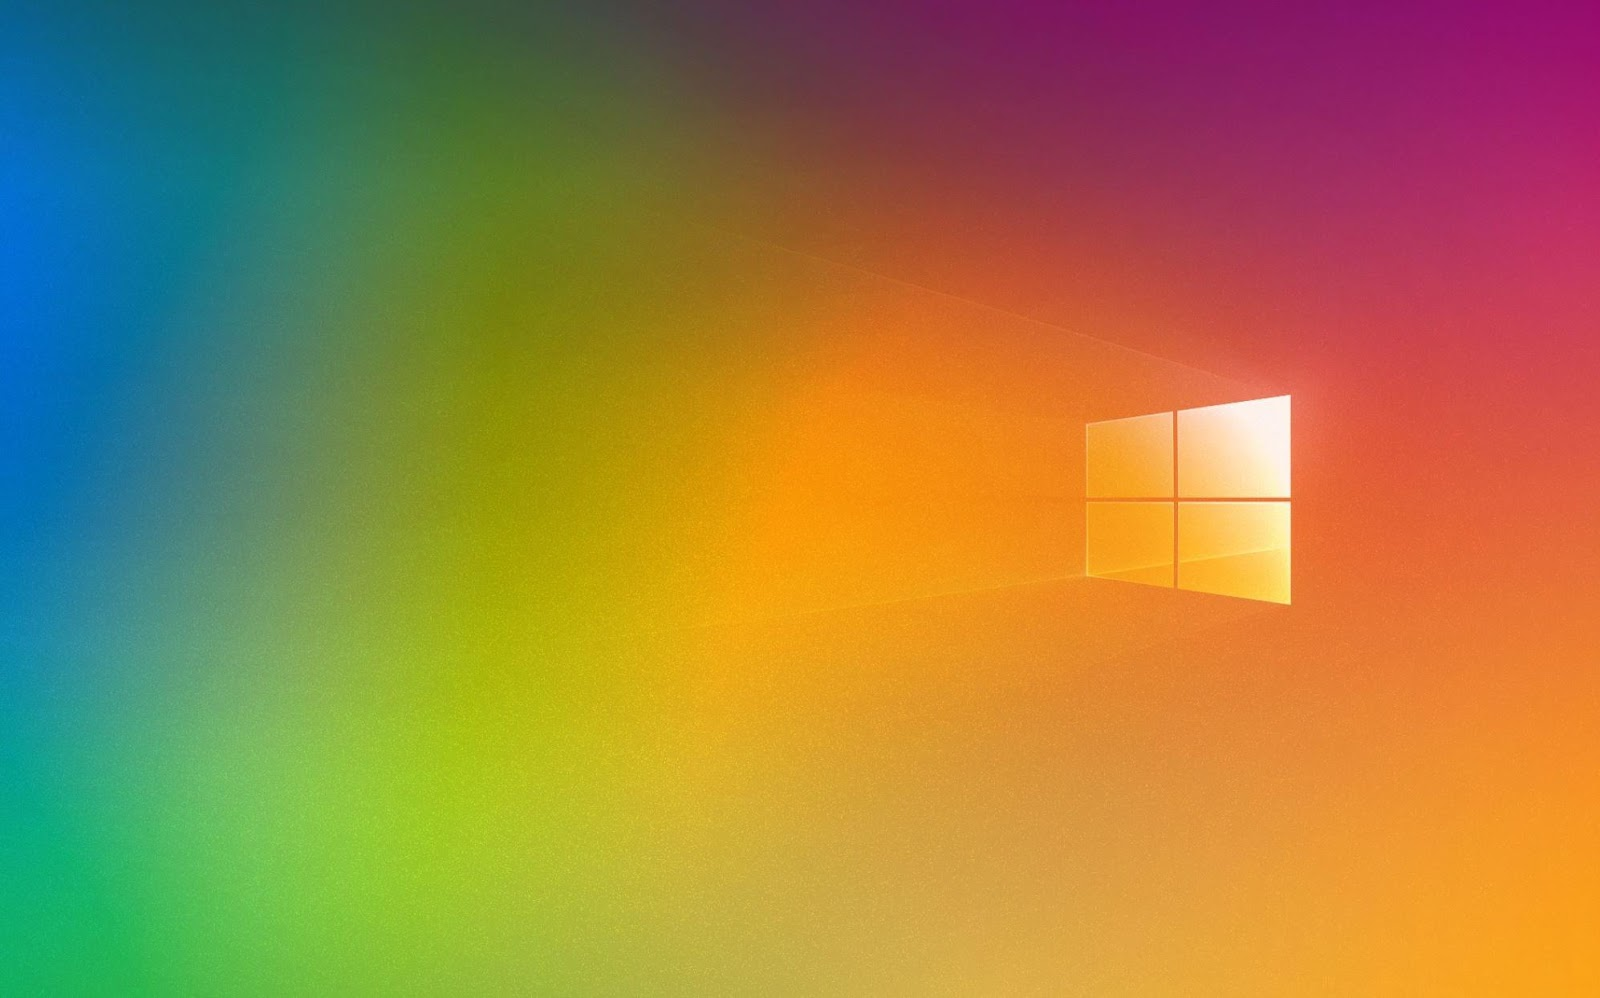 Microsoft is throttling availability of Windows 10 20H2 ...